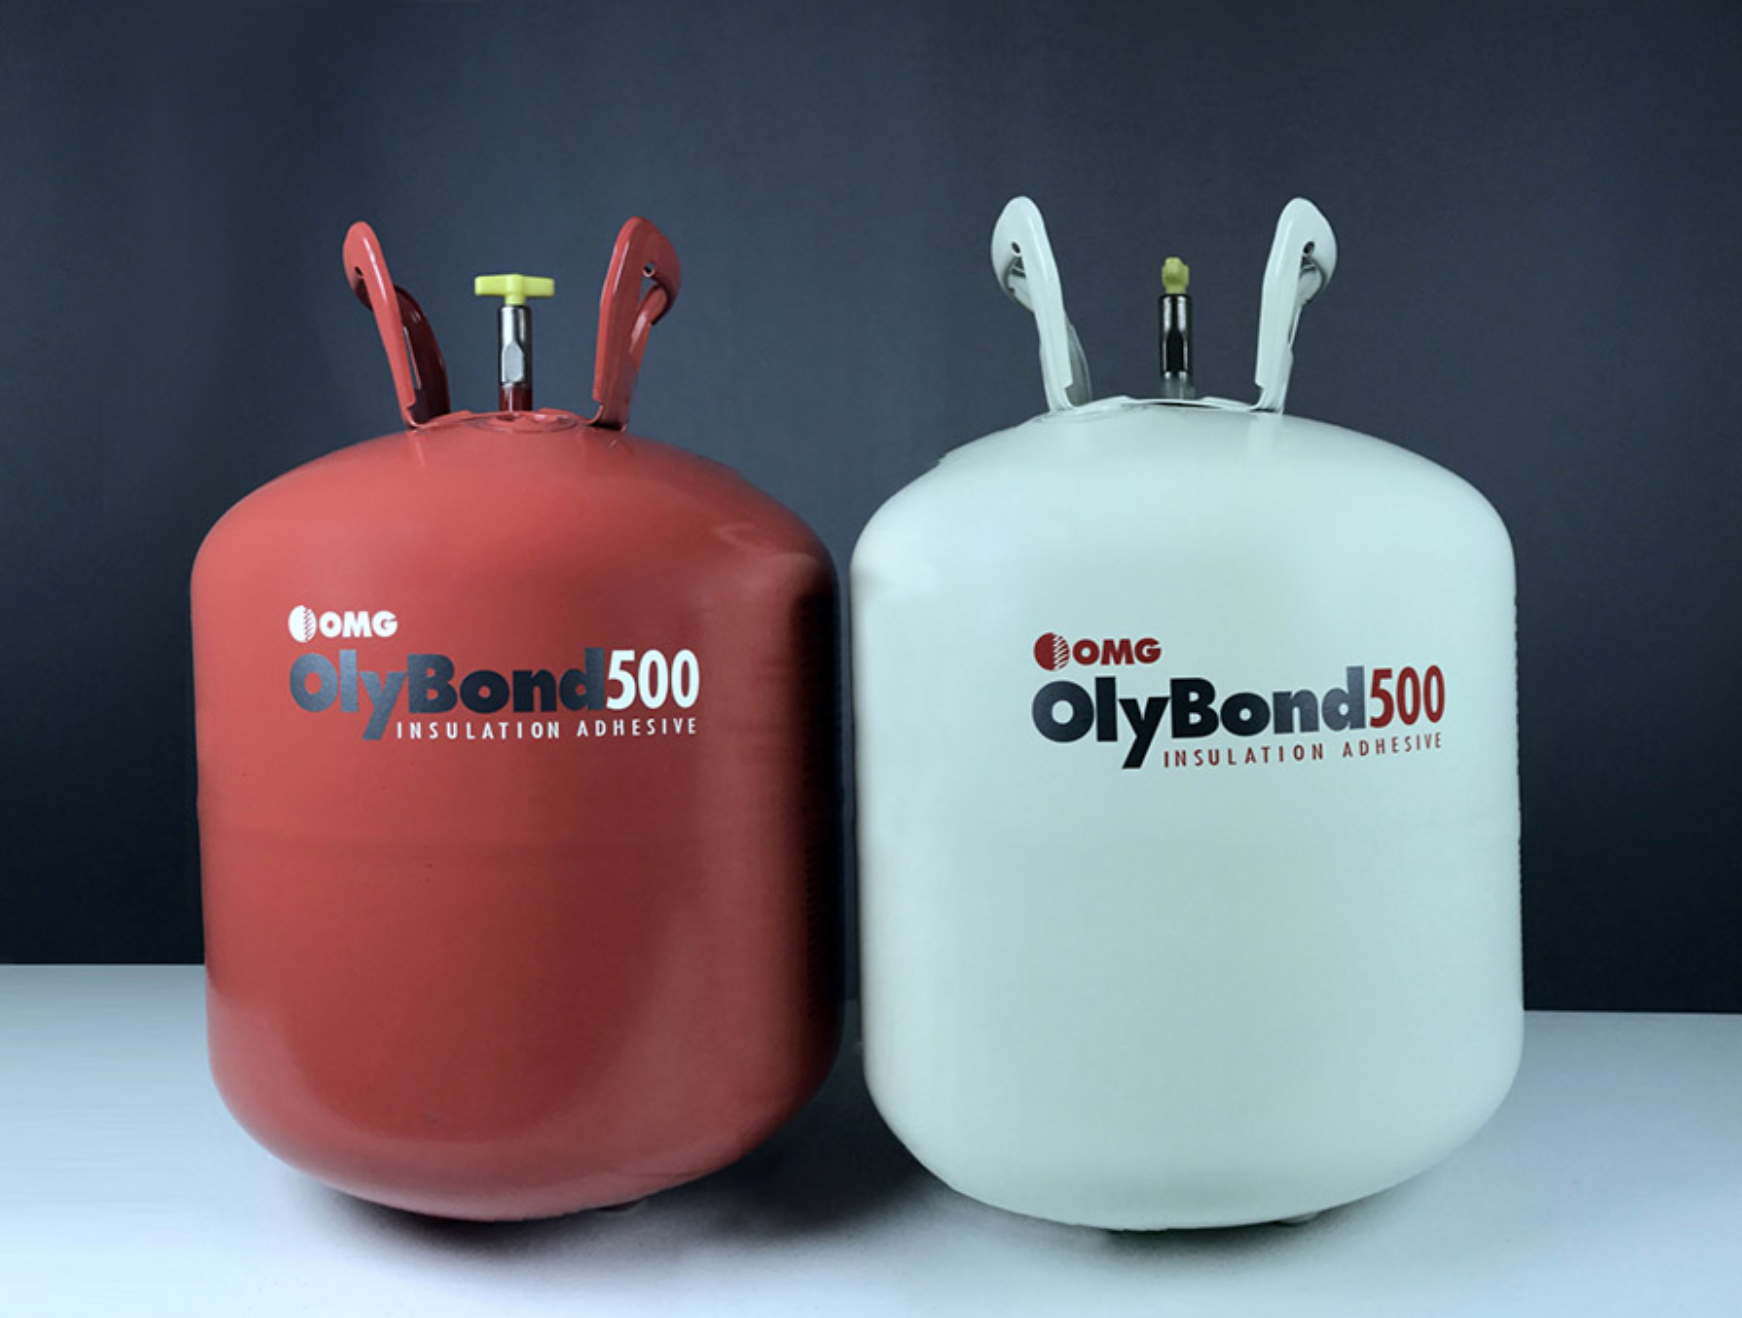 Image of OlyBond500 canisters